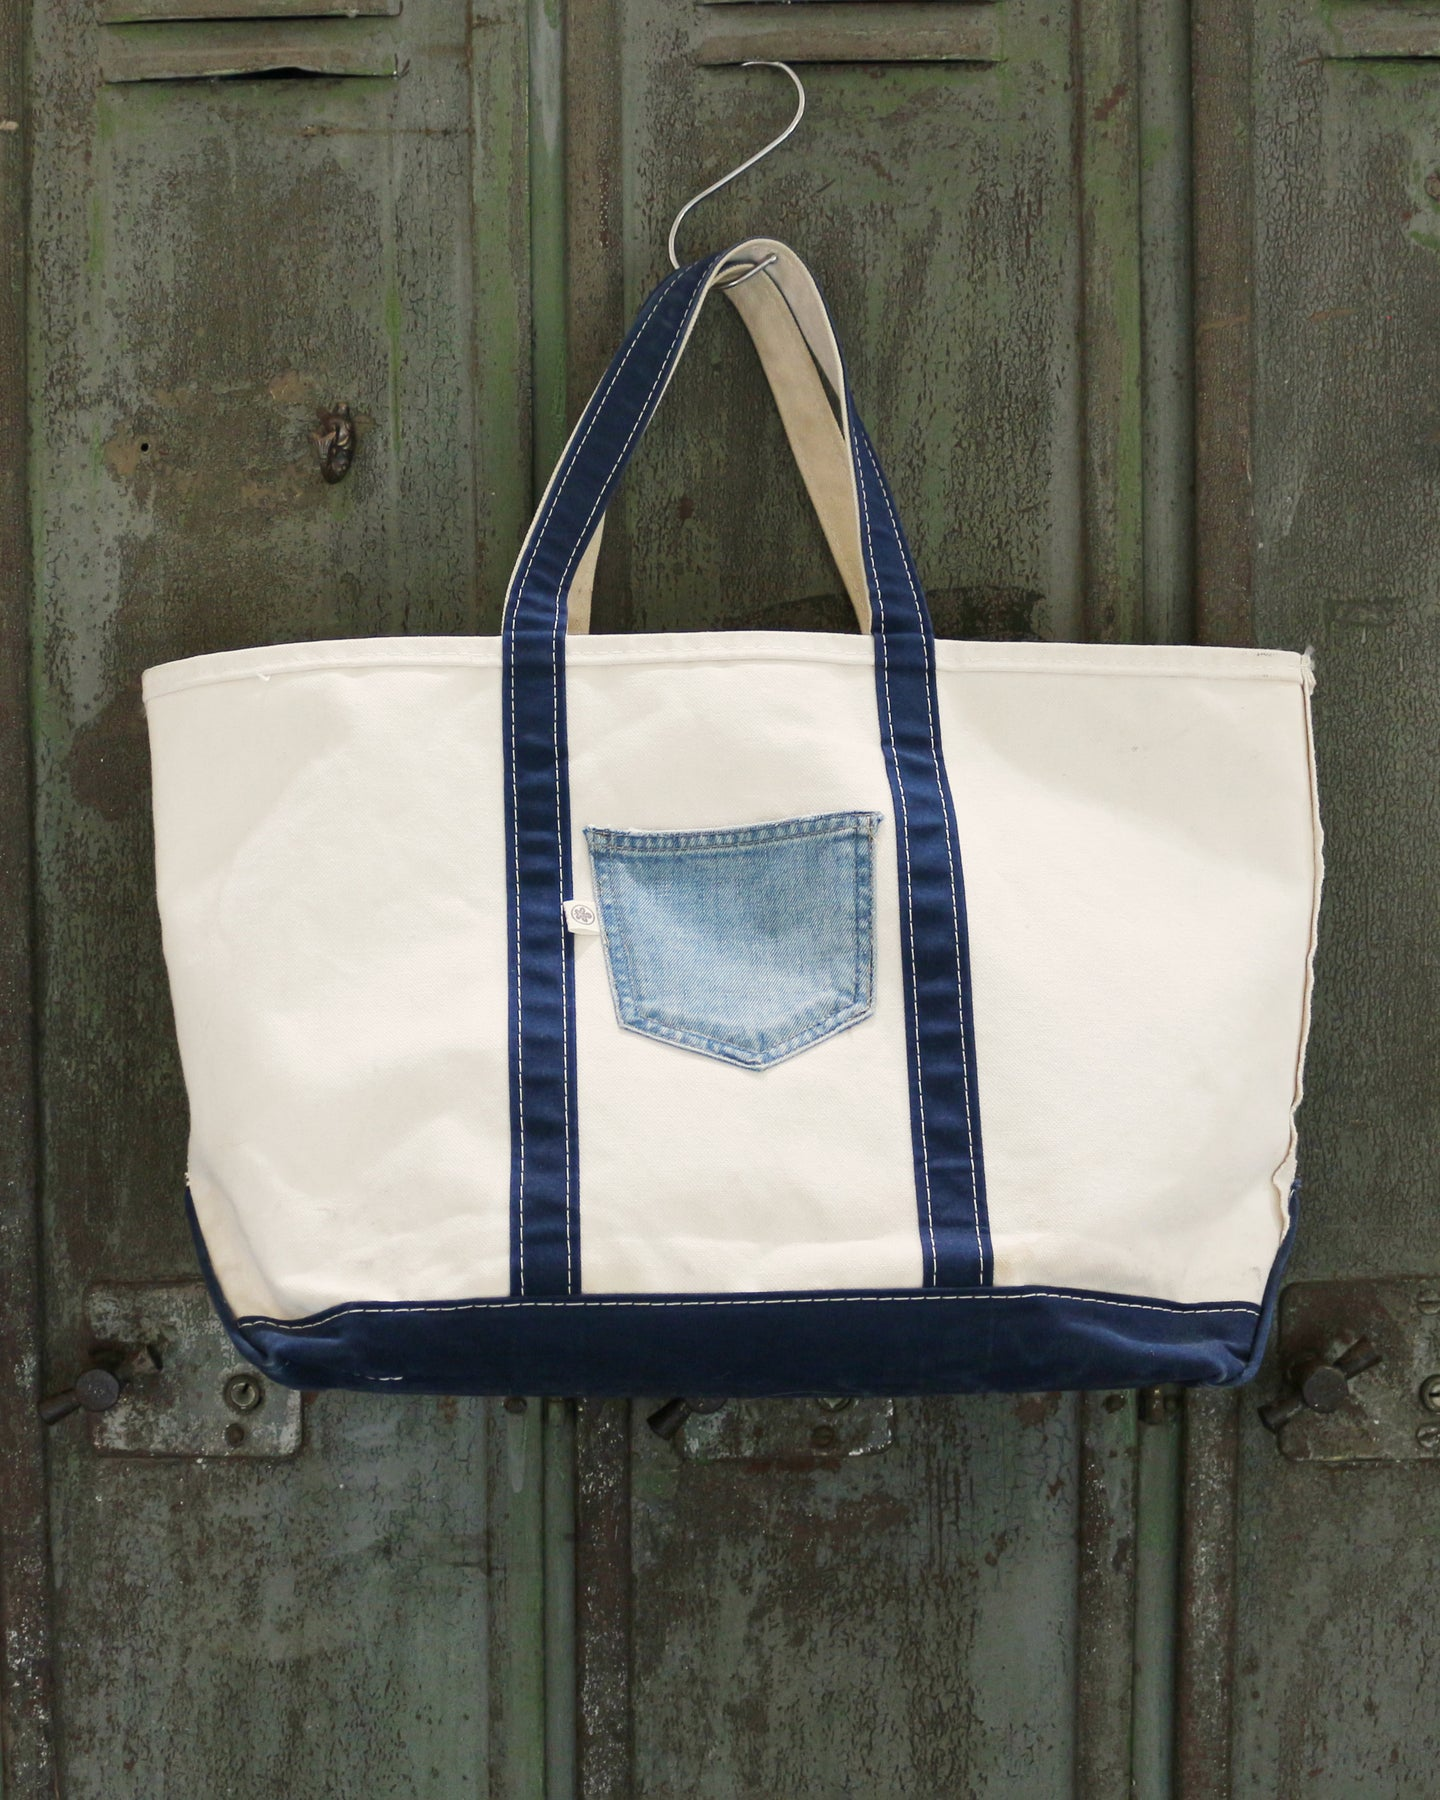 Pre-owned LL Bean Boat Tote with Jean's pocket.